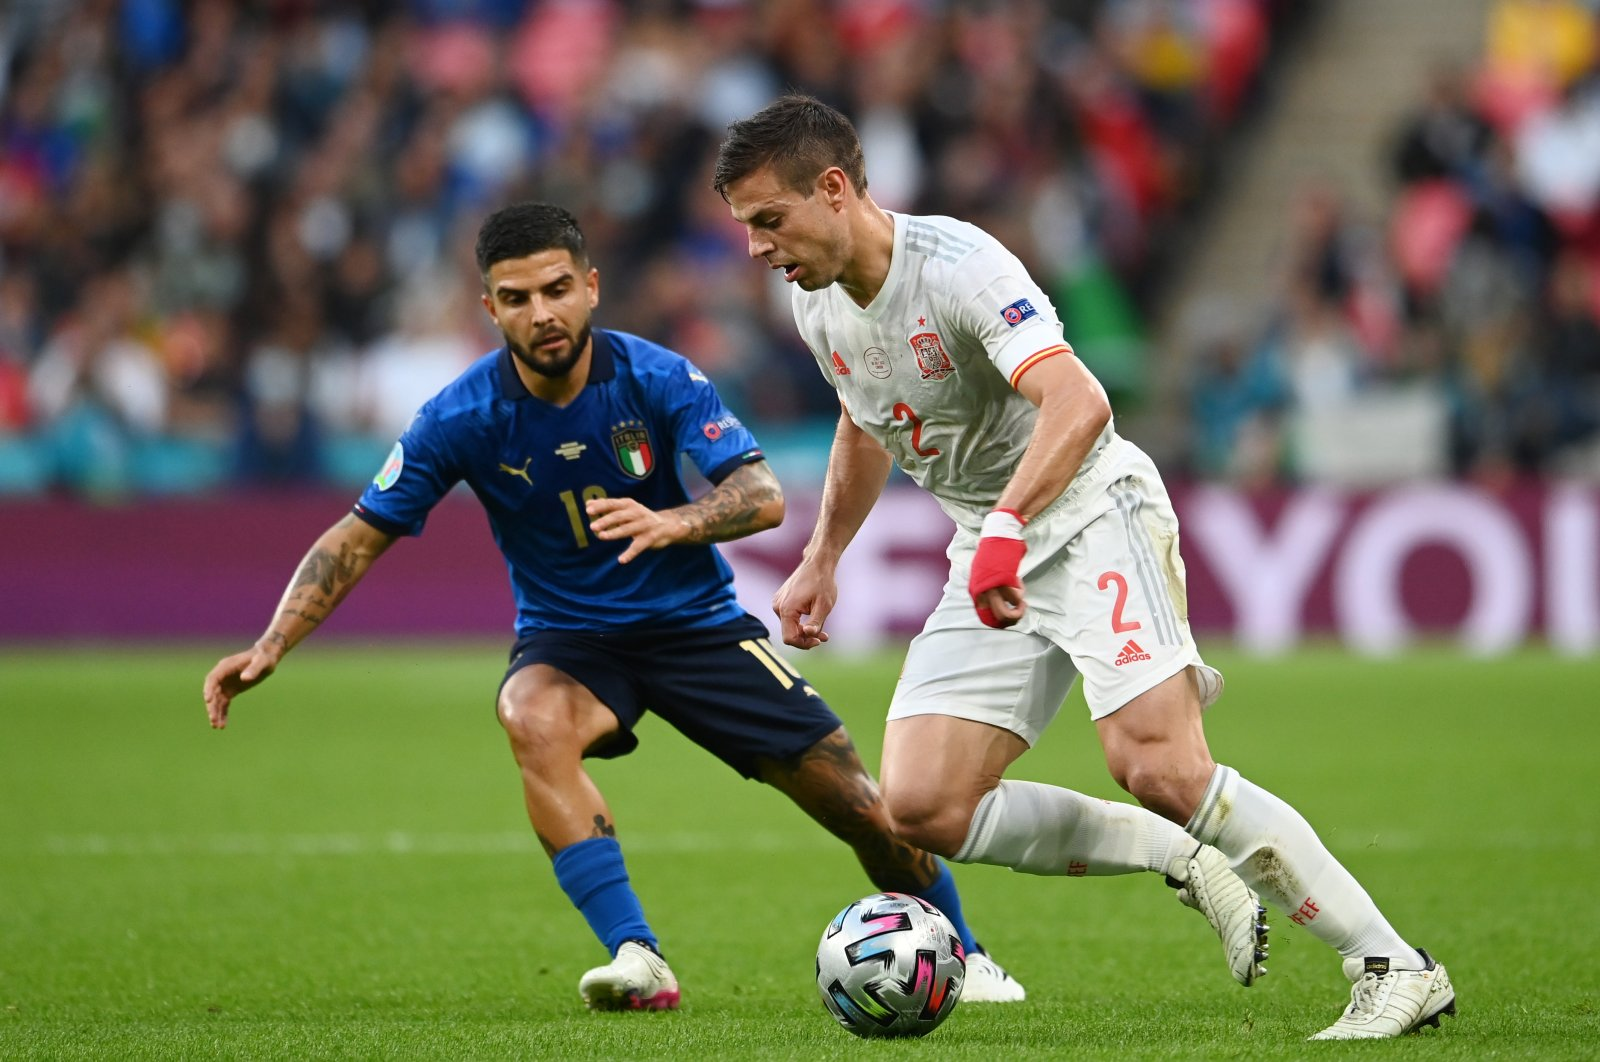 Spain's Cesar Azpilicueta (R) tries to dribble past Italy's Lorenzo Insigne during a Euro 2020 semifinal match at the Wembley Stadium, in London, England, July 6, 2021. (Getty Images)